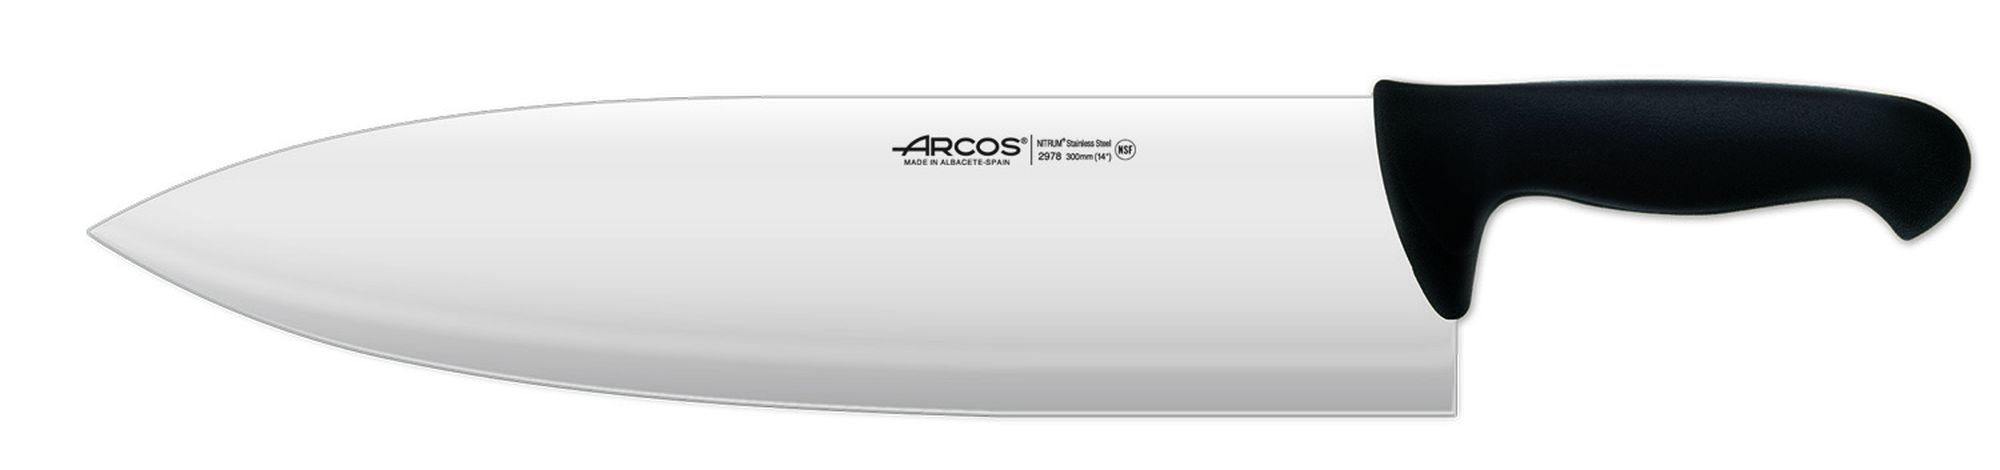 Roma Knife Arcos ref.: 297825